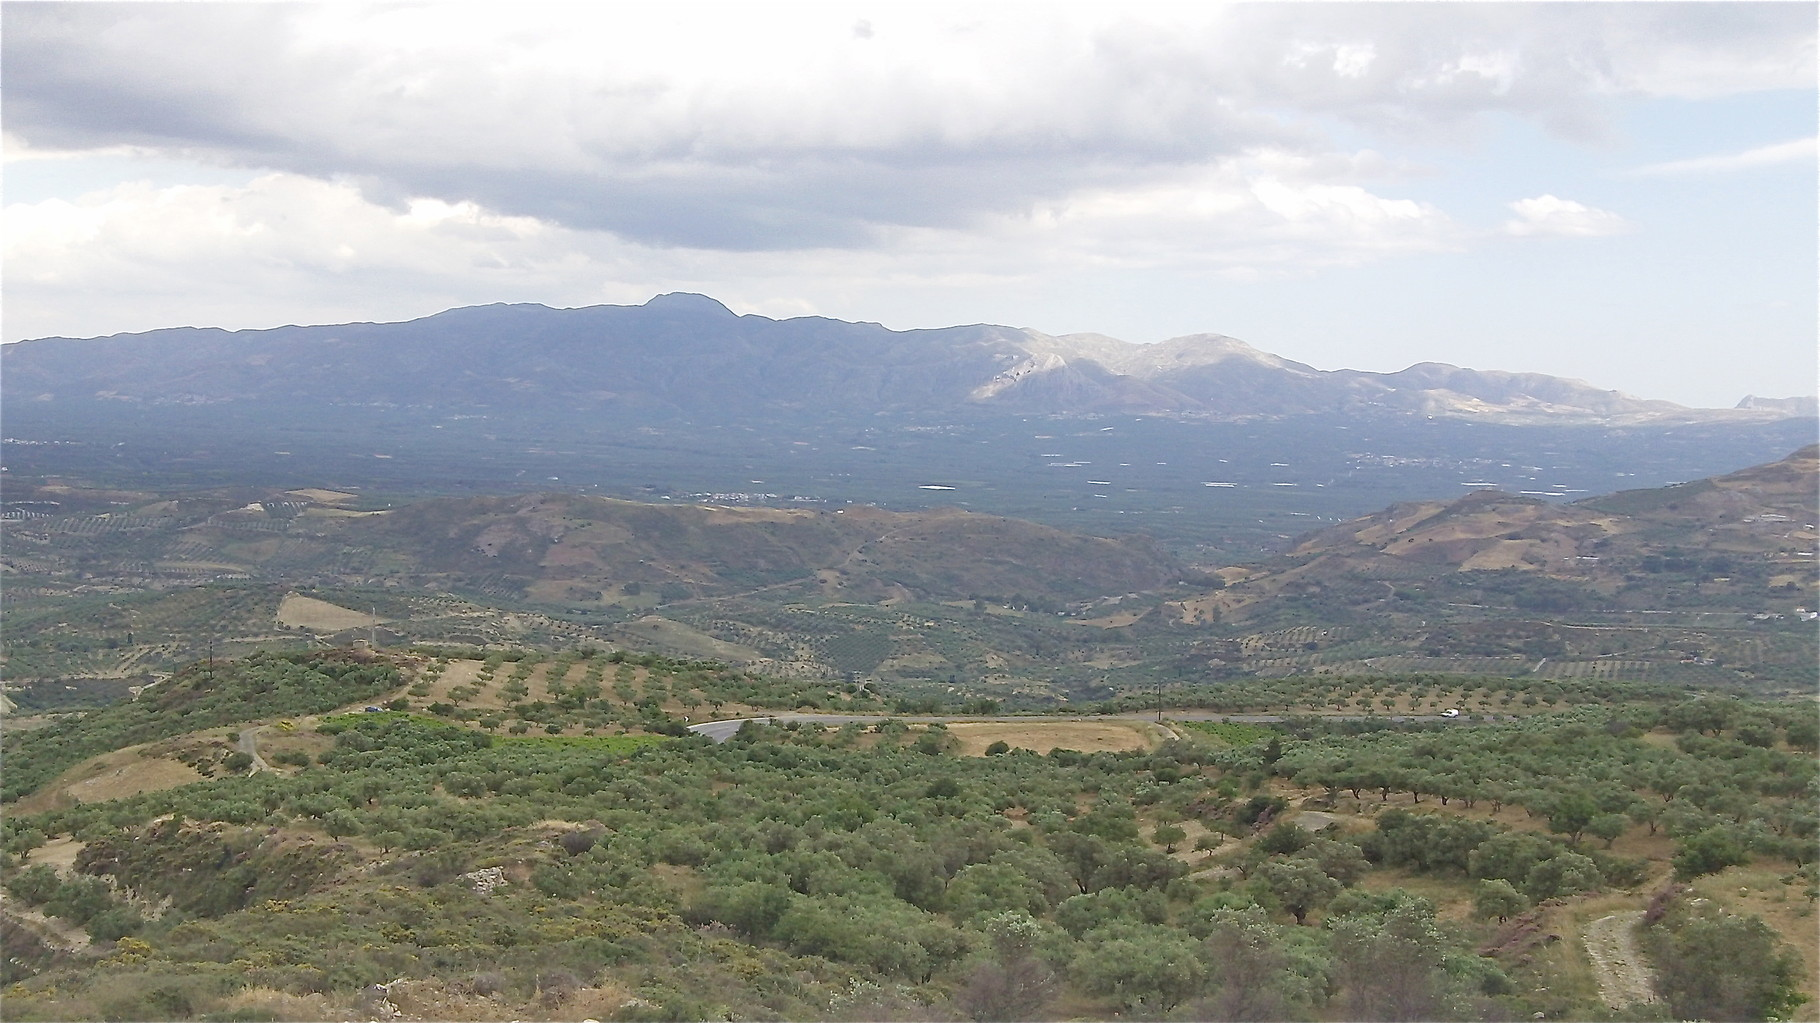 mountains near Gortyna, Crete